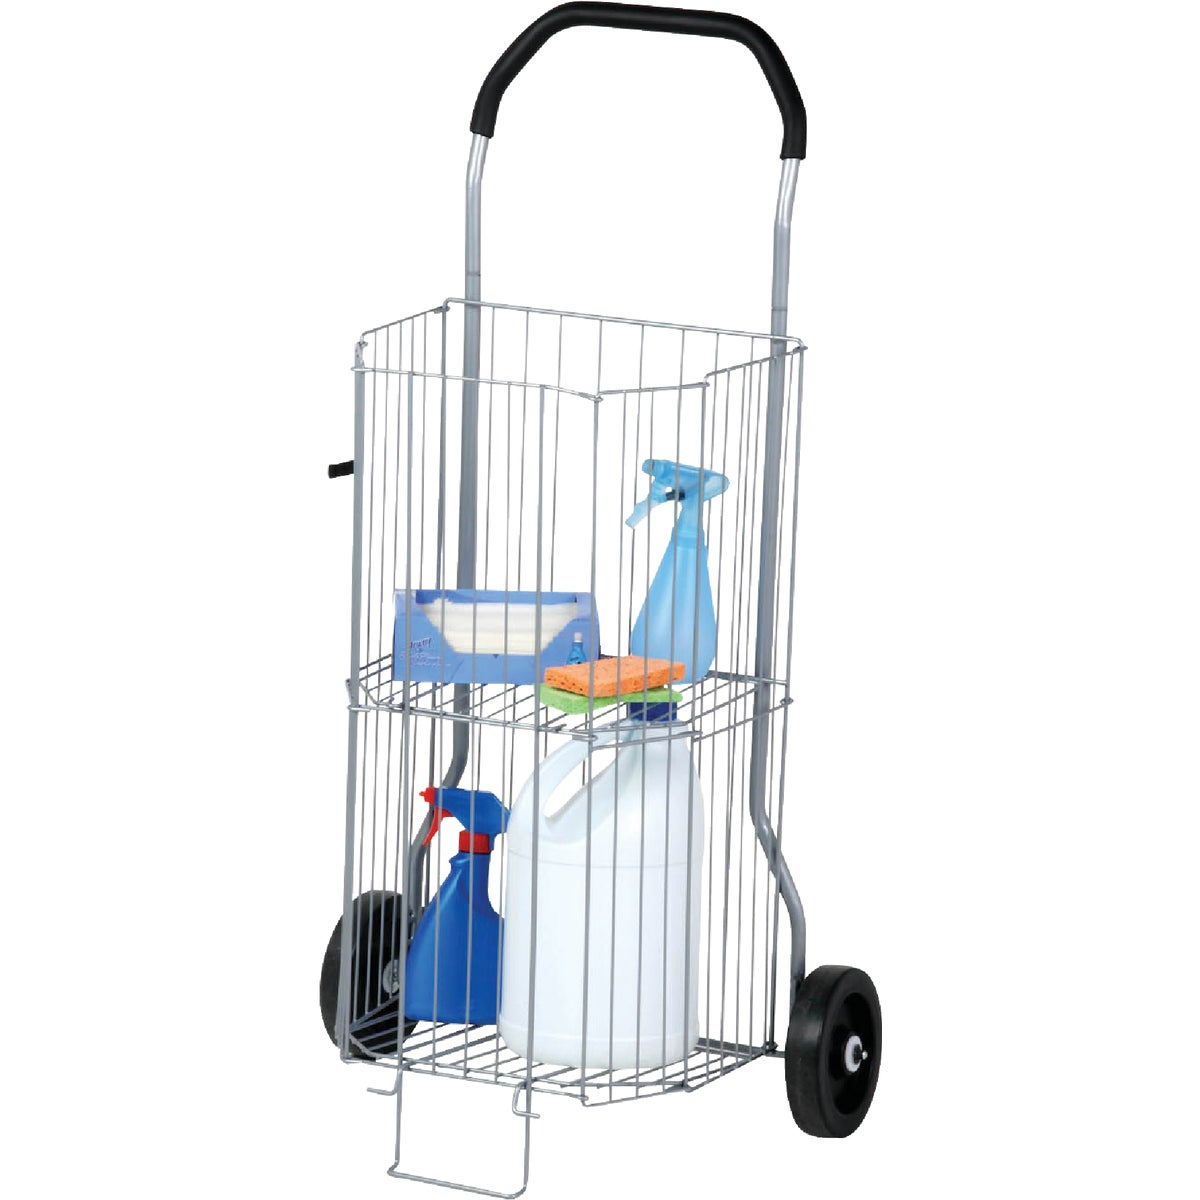 2-TIER ALL-PURPOSE CART - CRT-01383 by Honey Can Do